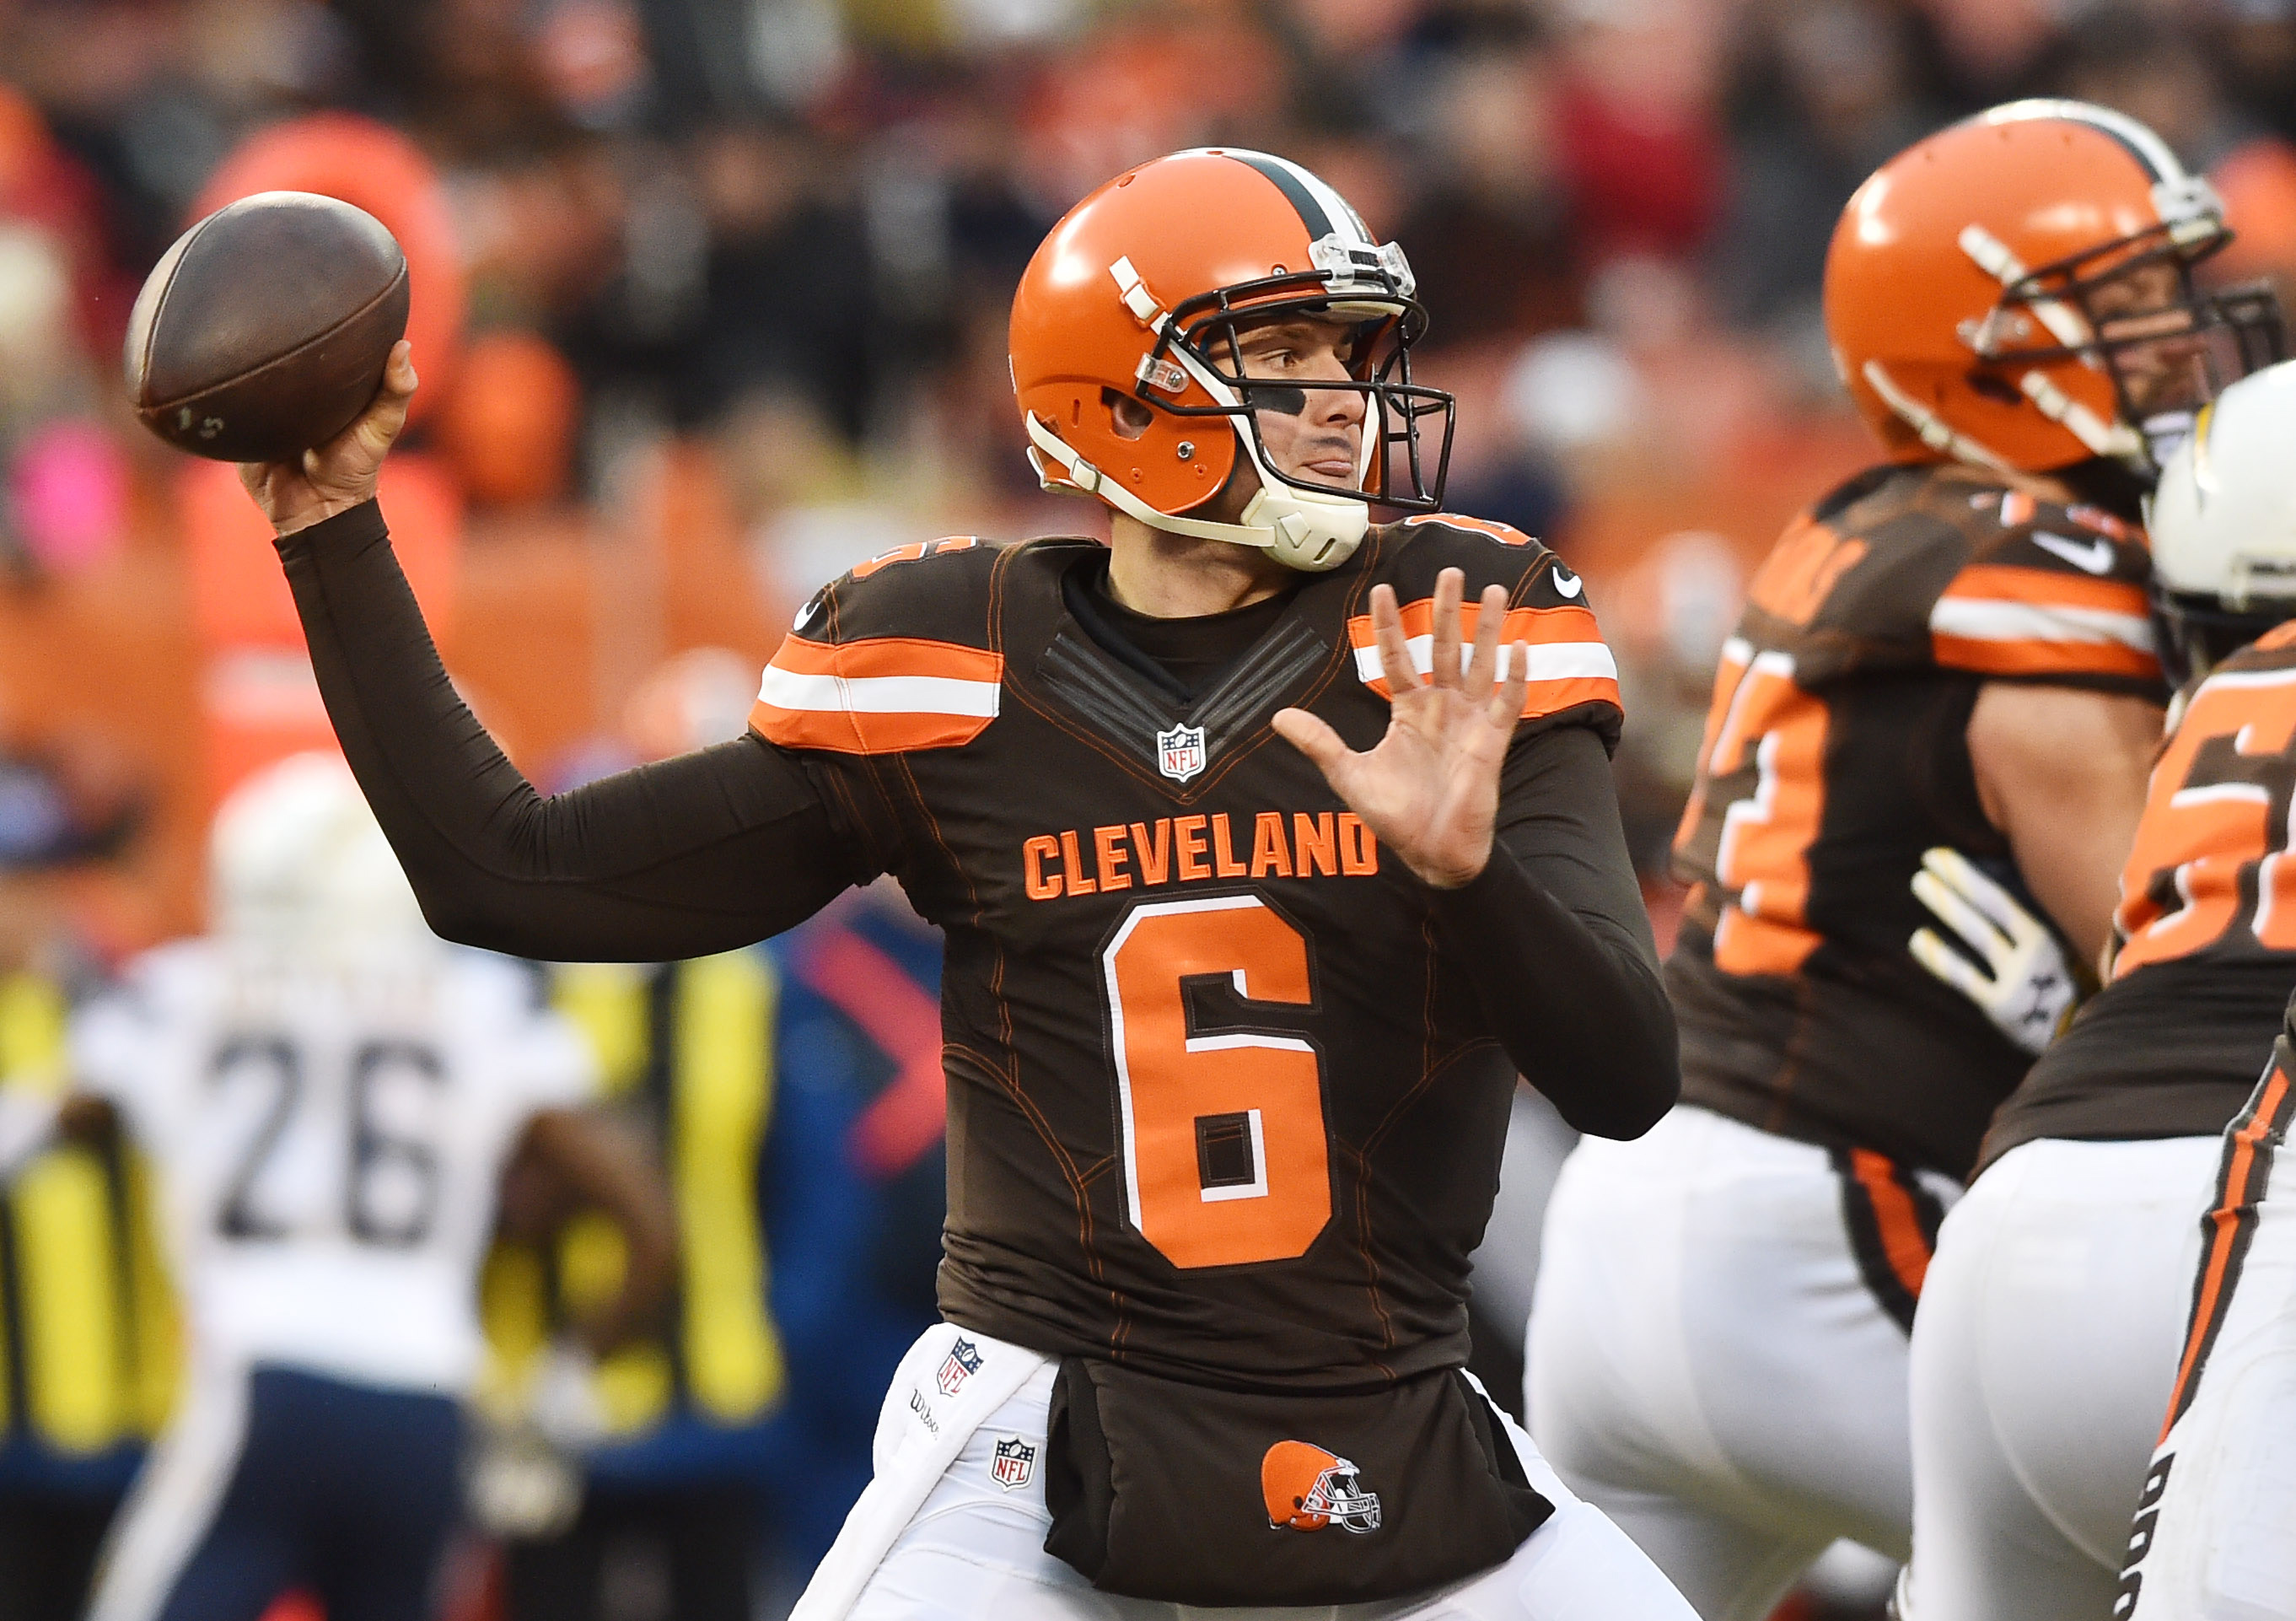 Kirk Cousins Conflicting Reports About Cleveland Browns